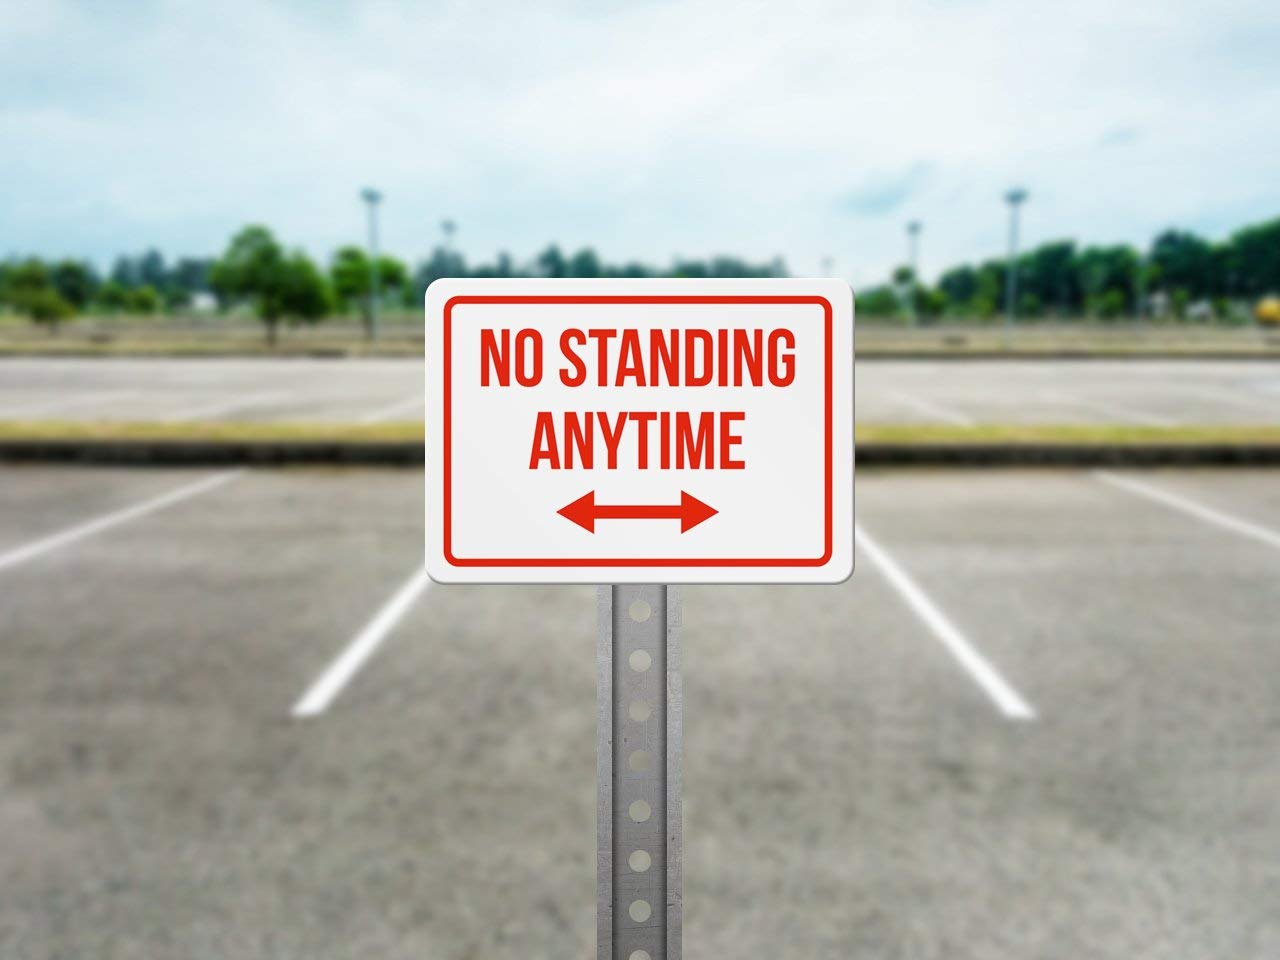 Metal iCandy Products Inc No Standing Anytime Right and Left Arrow No Parking Business Safety Traffic Signs Red 7.5x10.5